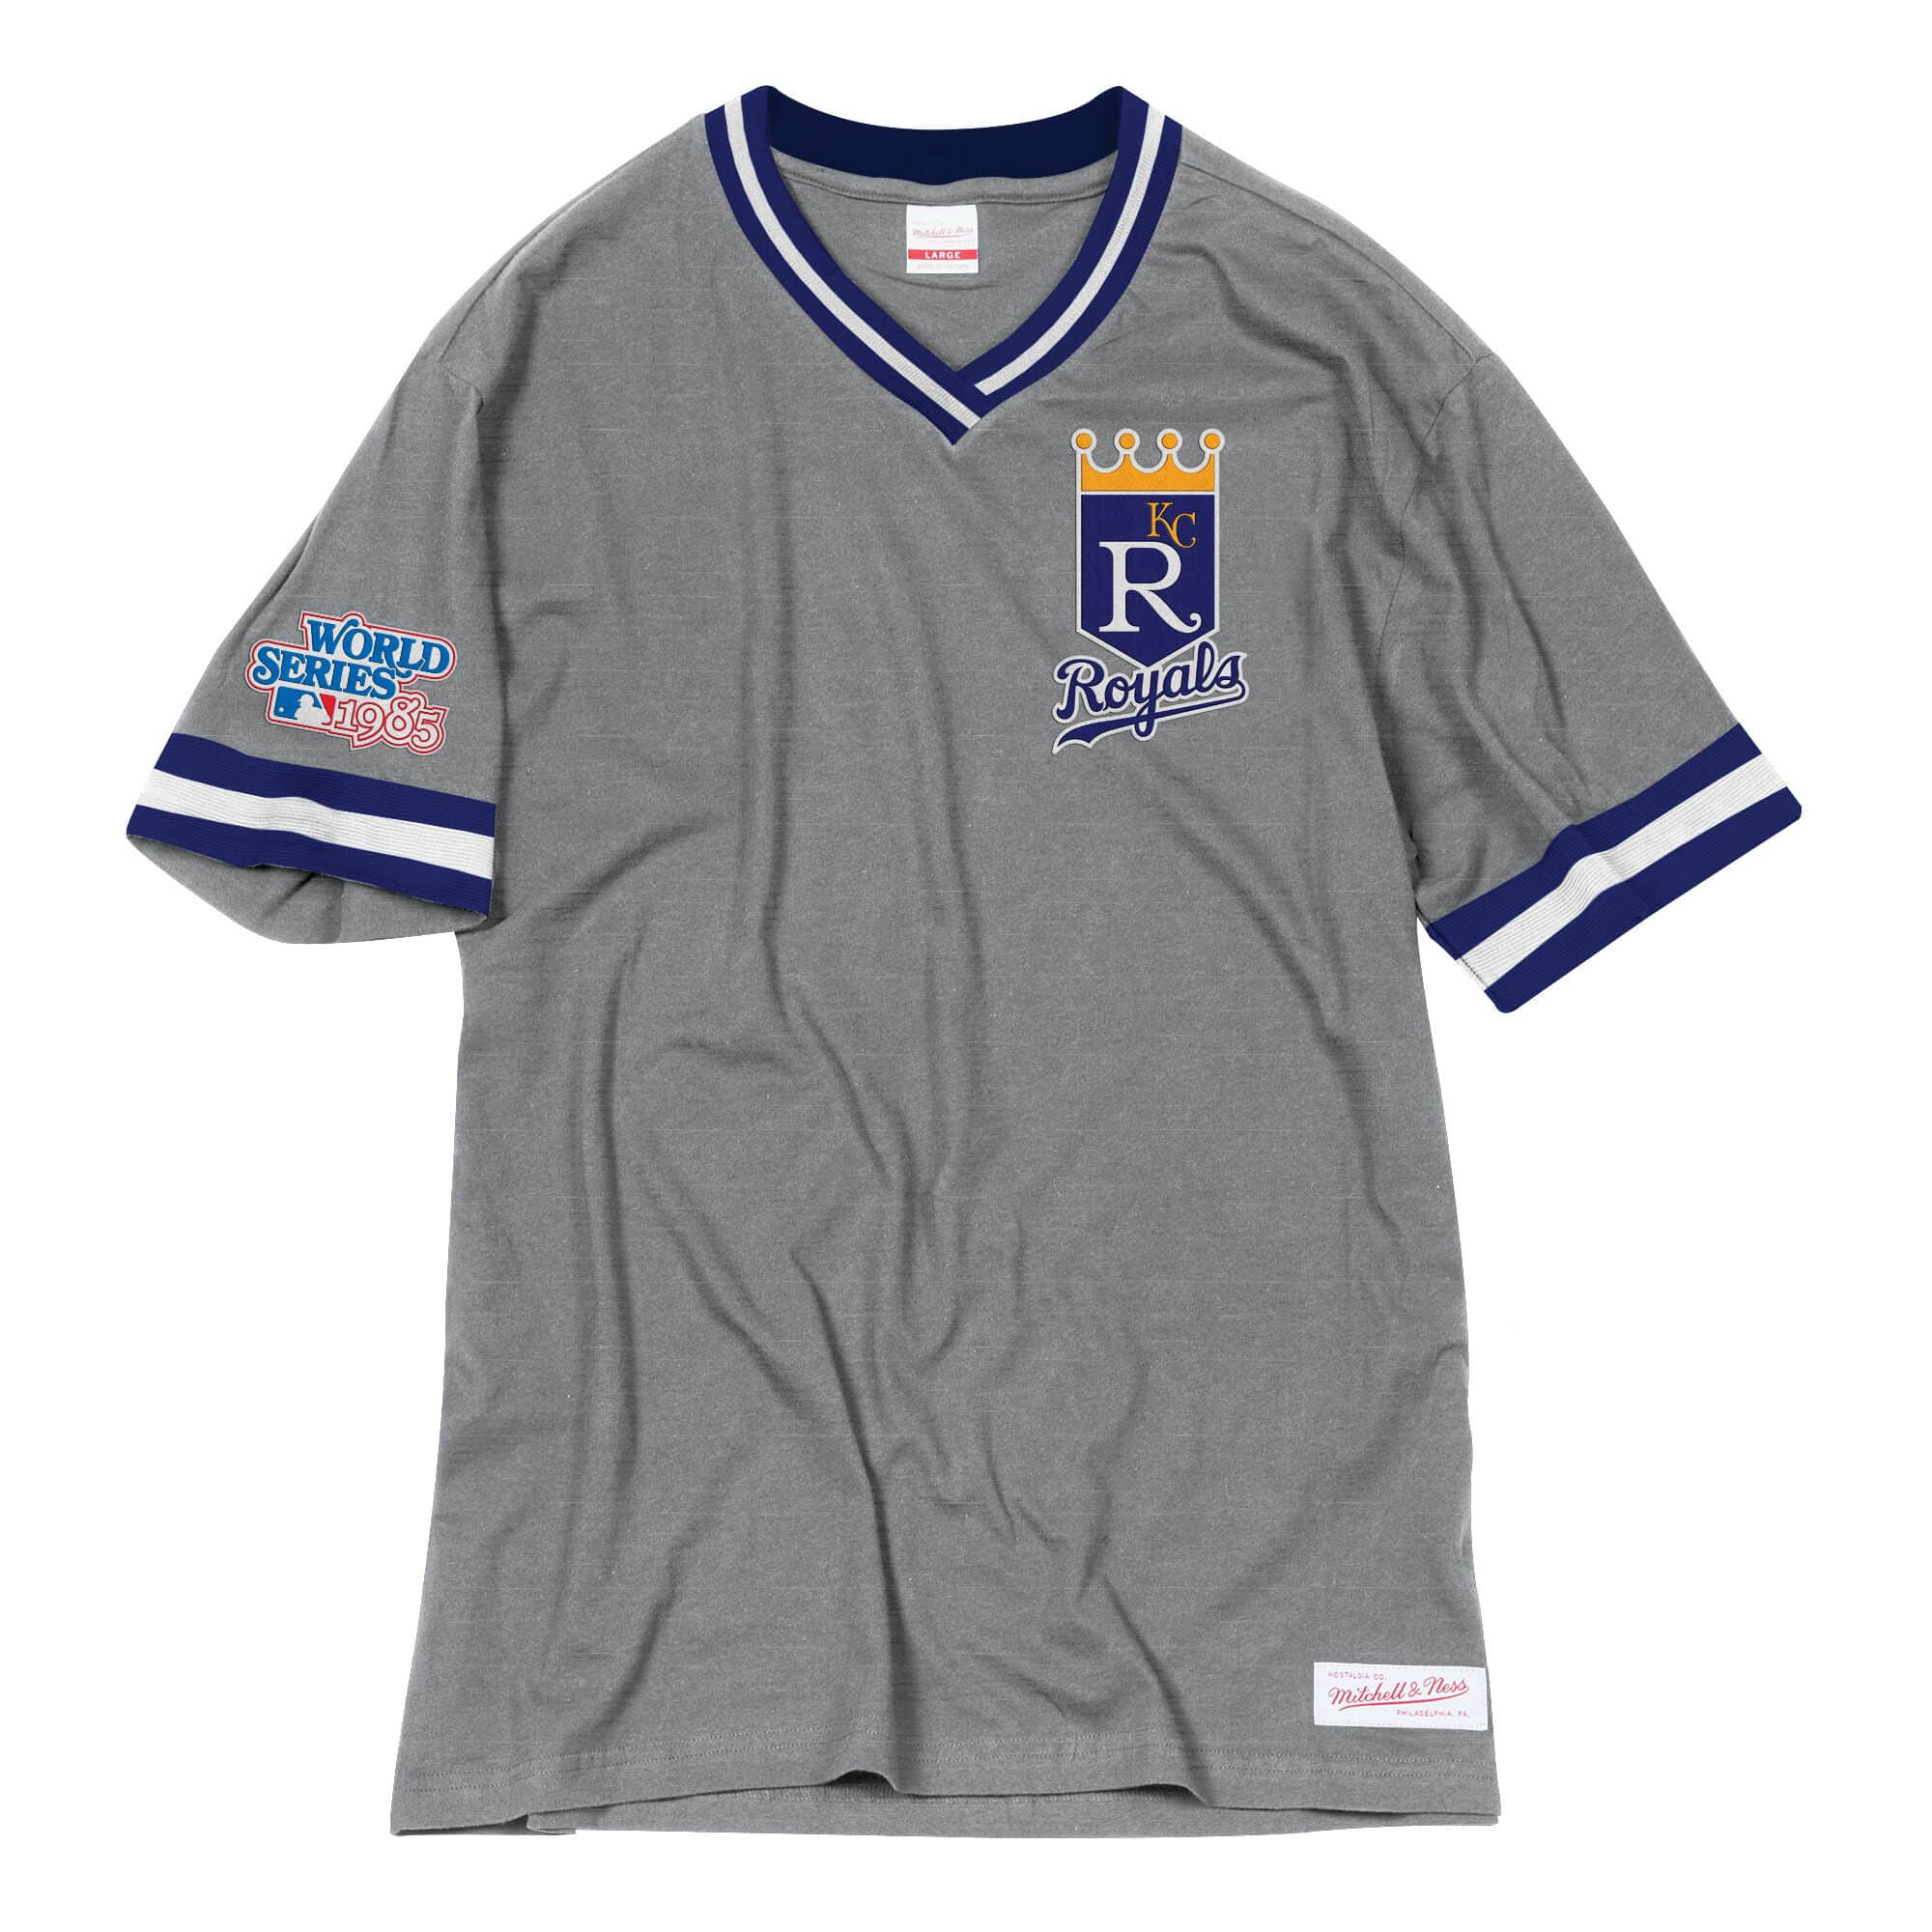 Overtime Win Vintage Tee 2.0 Kansas City Royals